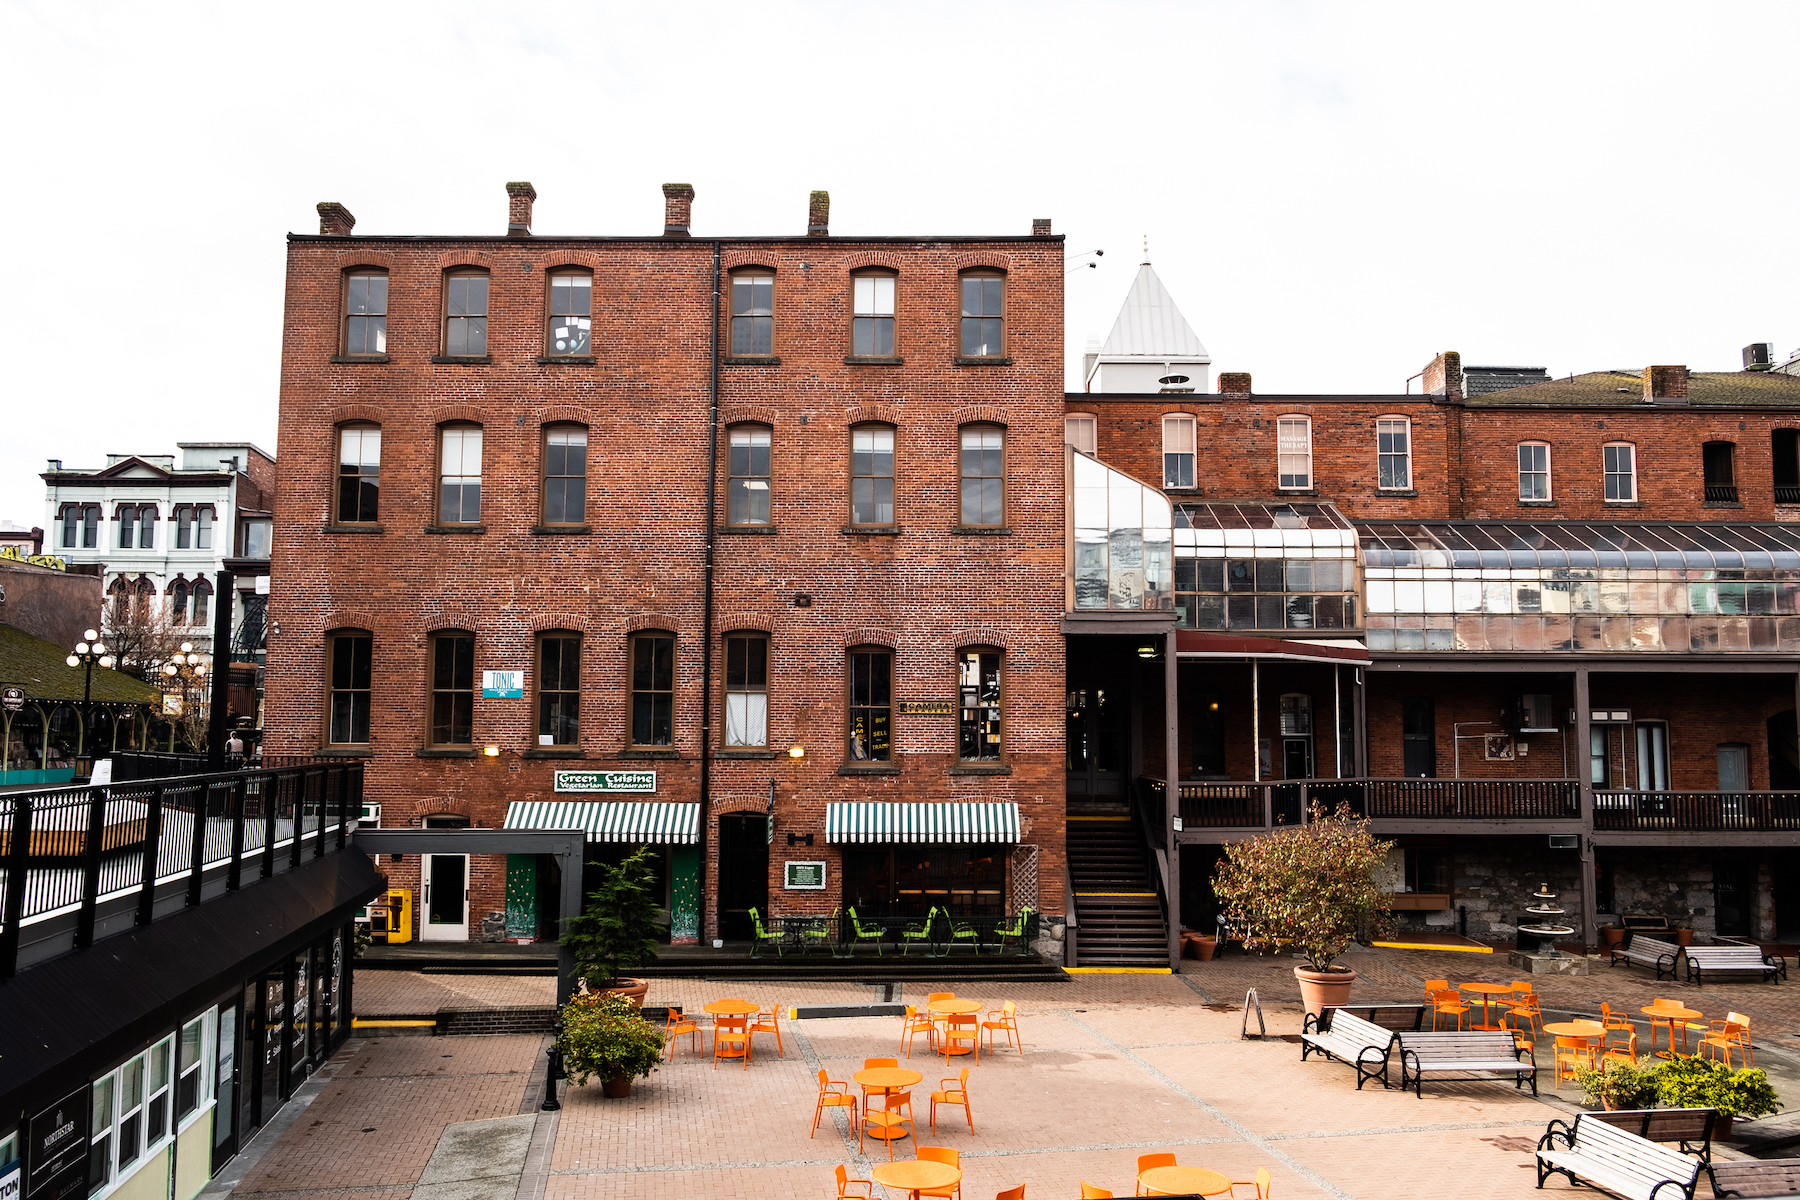 Old brick building with a courtyard in Victoria BC